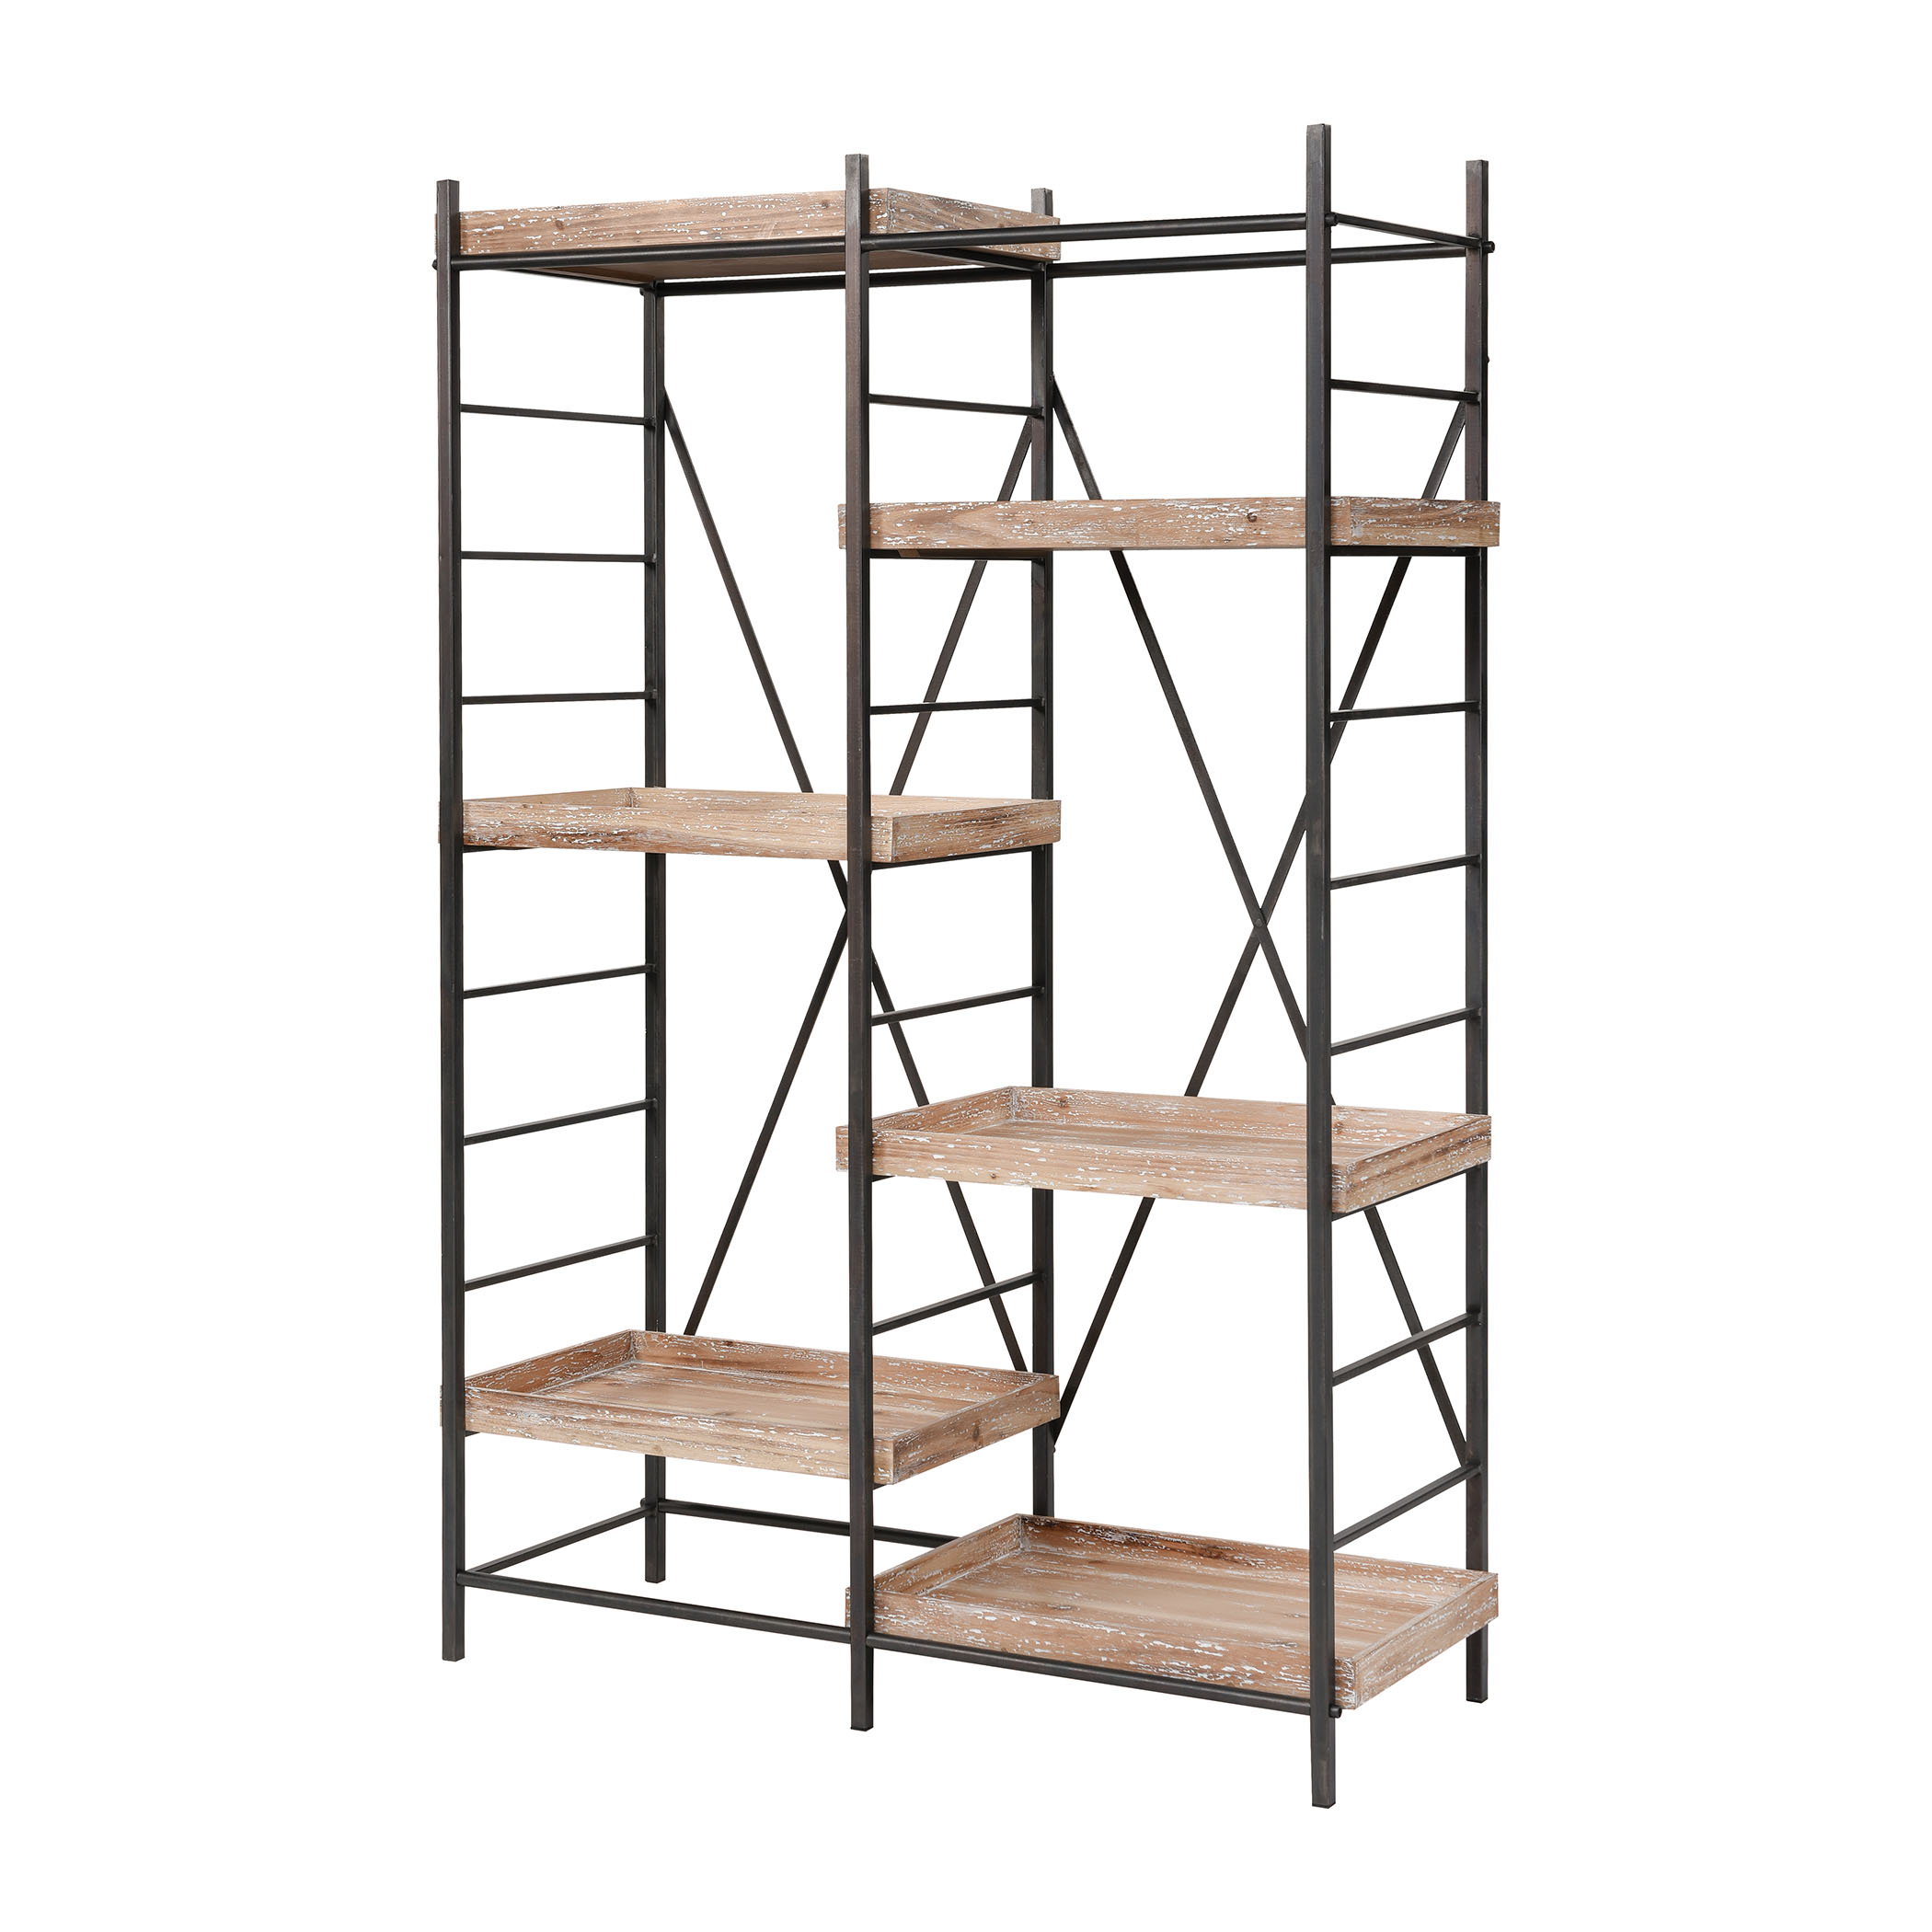 Tonka Staggered Shelving Unit in Natural Wood with White Antique and Bronze | Elk Home